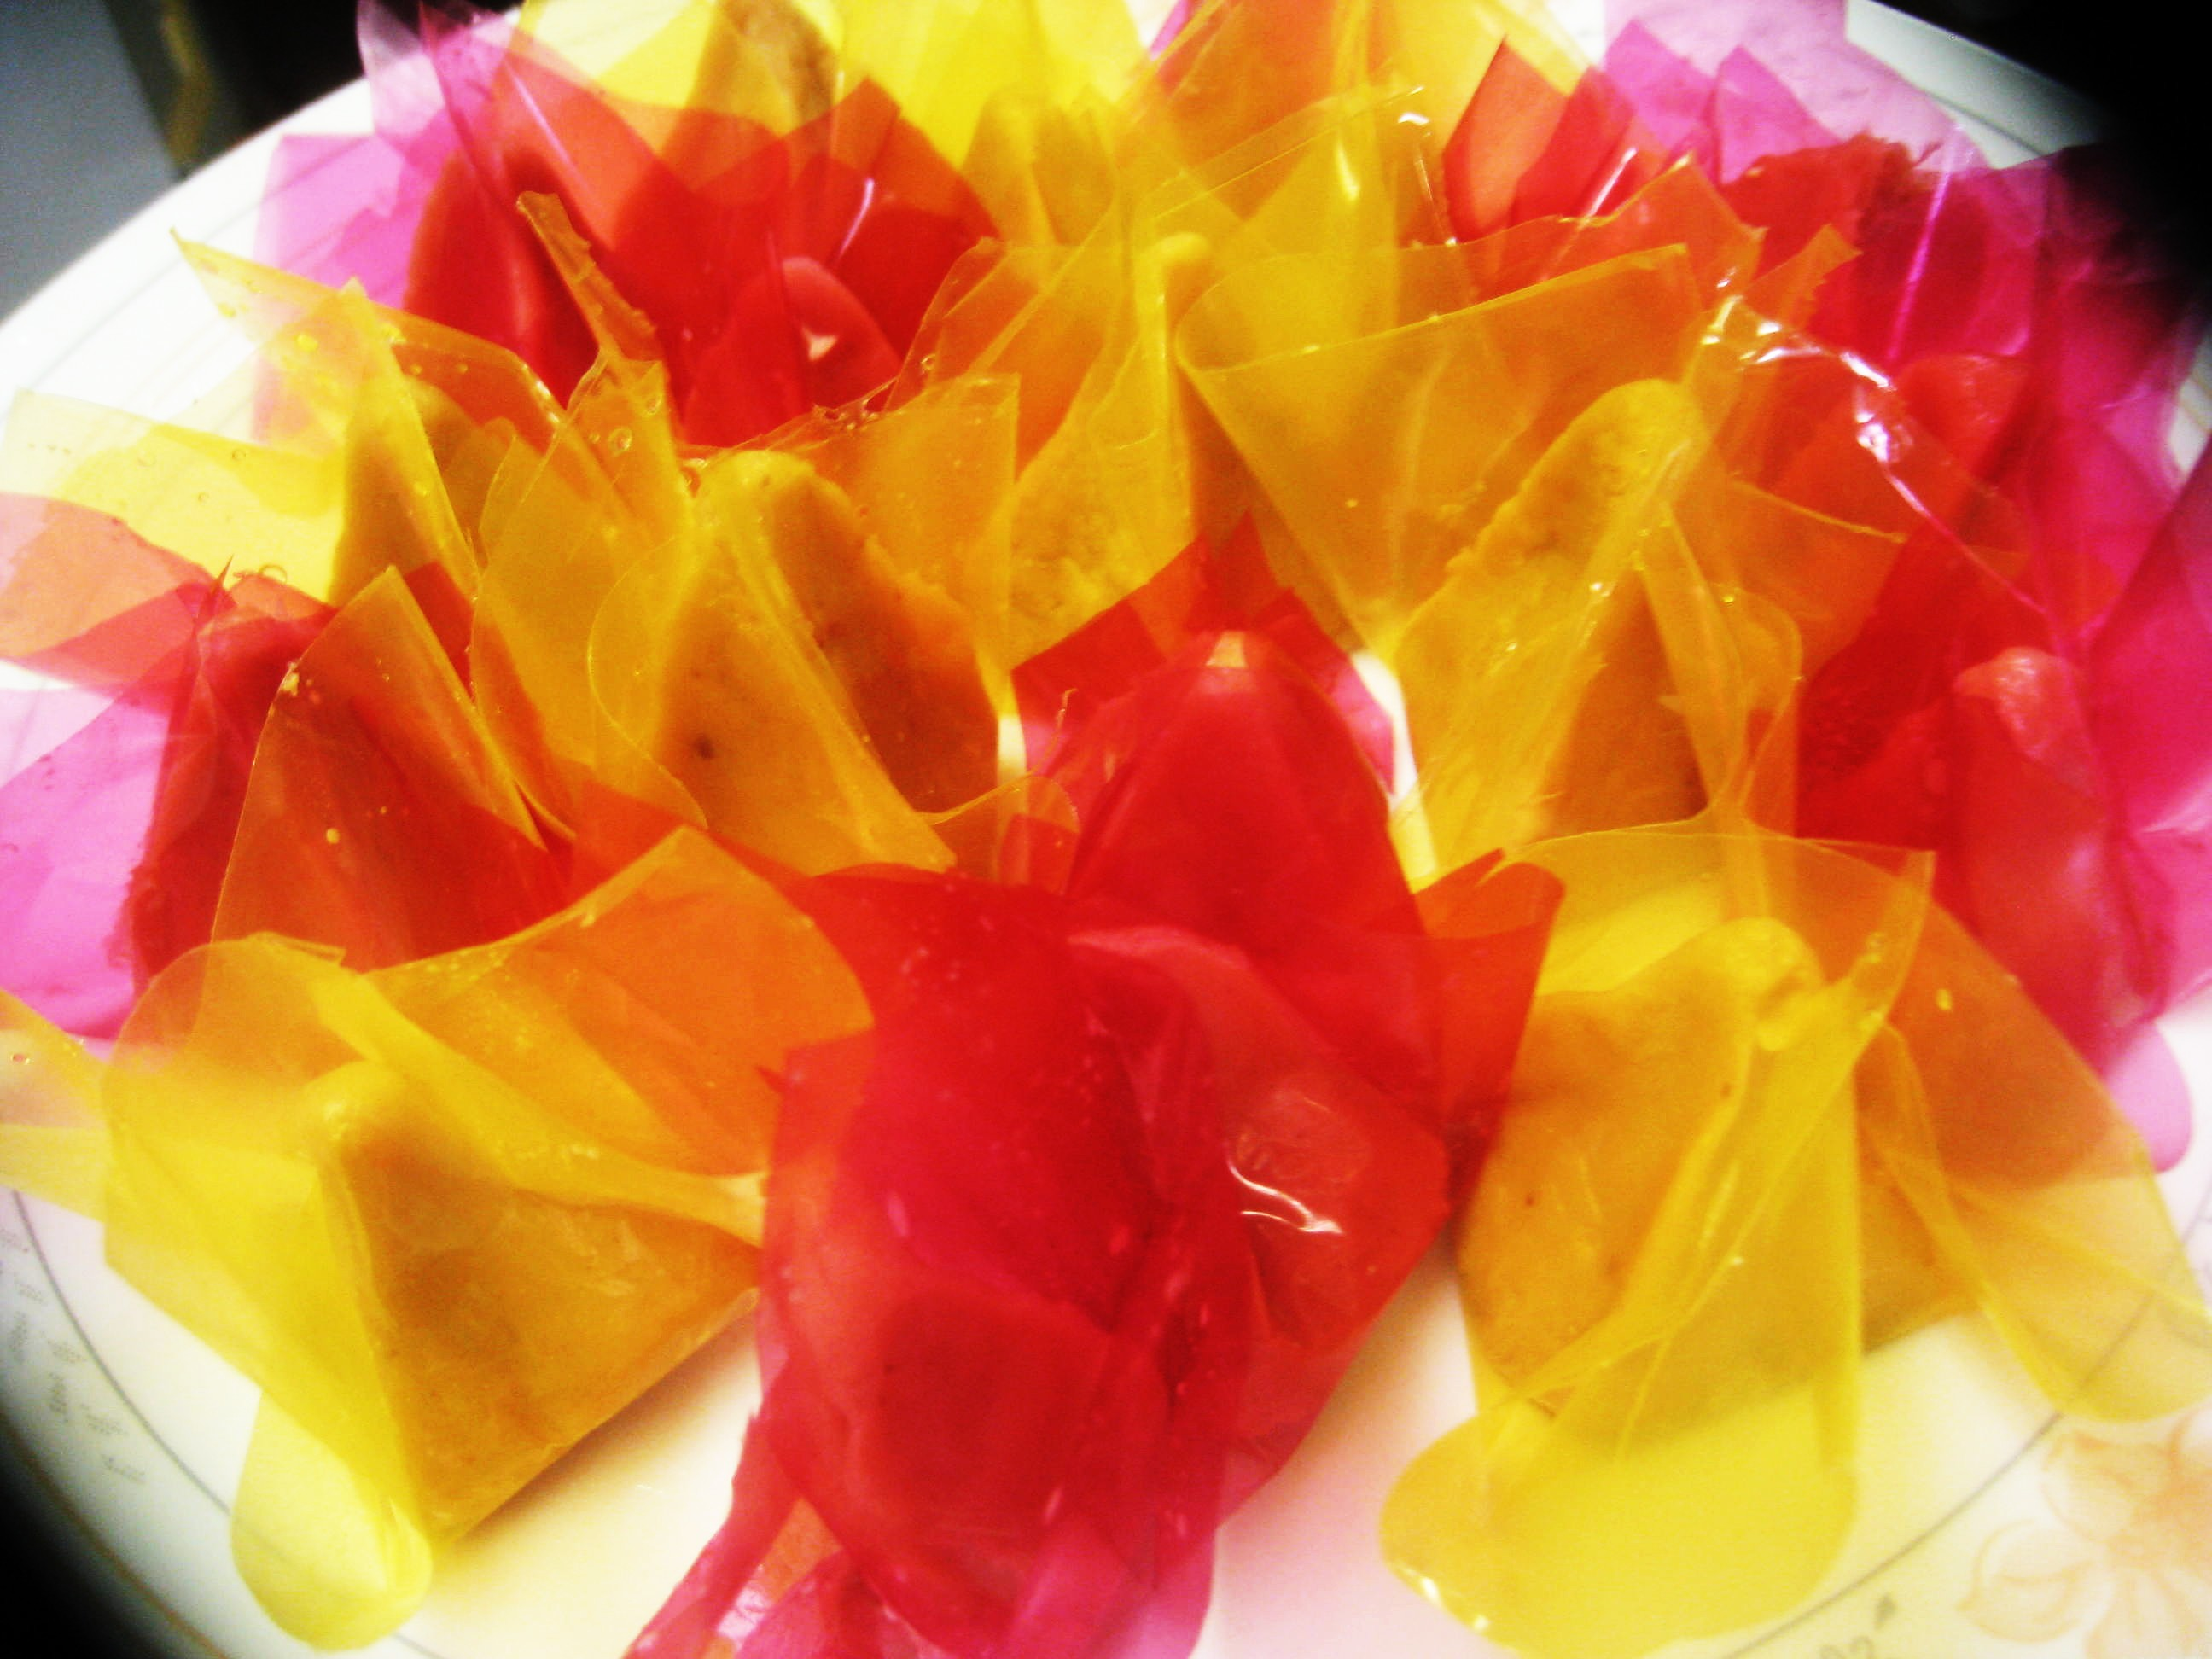 Filipino Recipe Yema http://picsbox.biz/key/yema%20recipe%20filipino